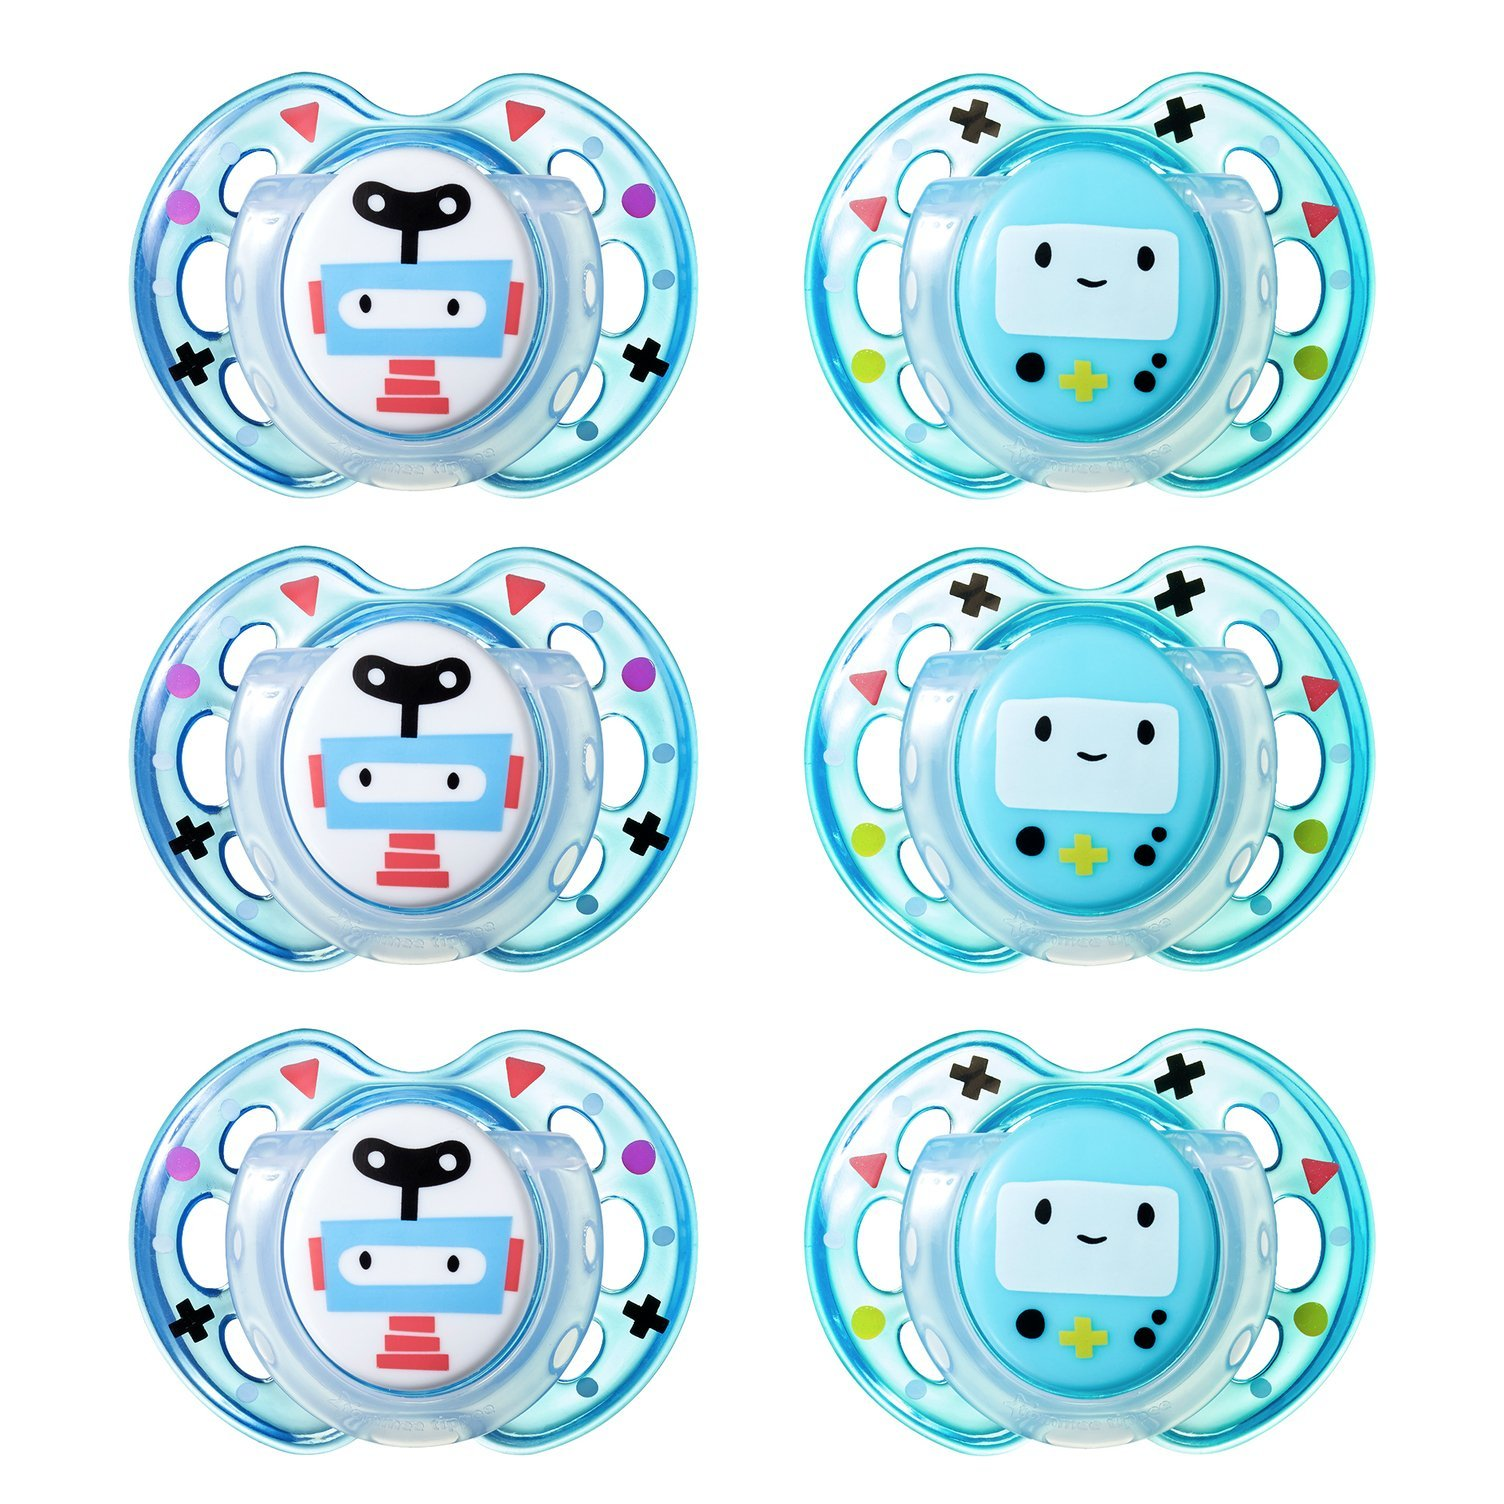 Tommee Tippee Closer to Nature Fun Style Orthodontic Baby Soothie Pacifier, 0-6 Months - Boy, 6 Pack by Tommee Tippee